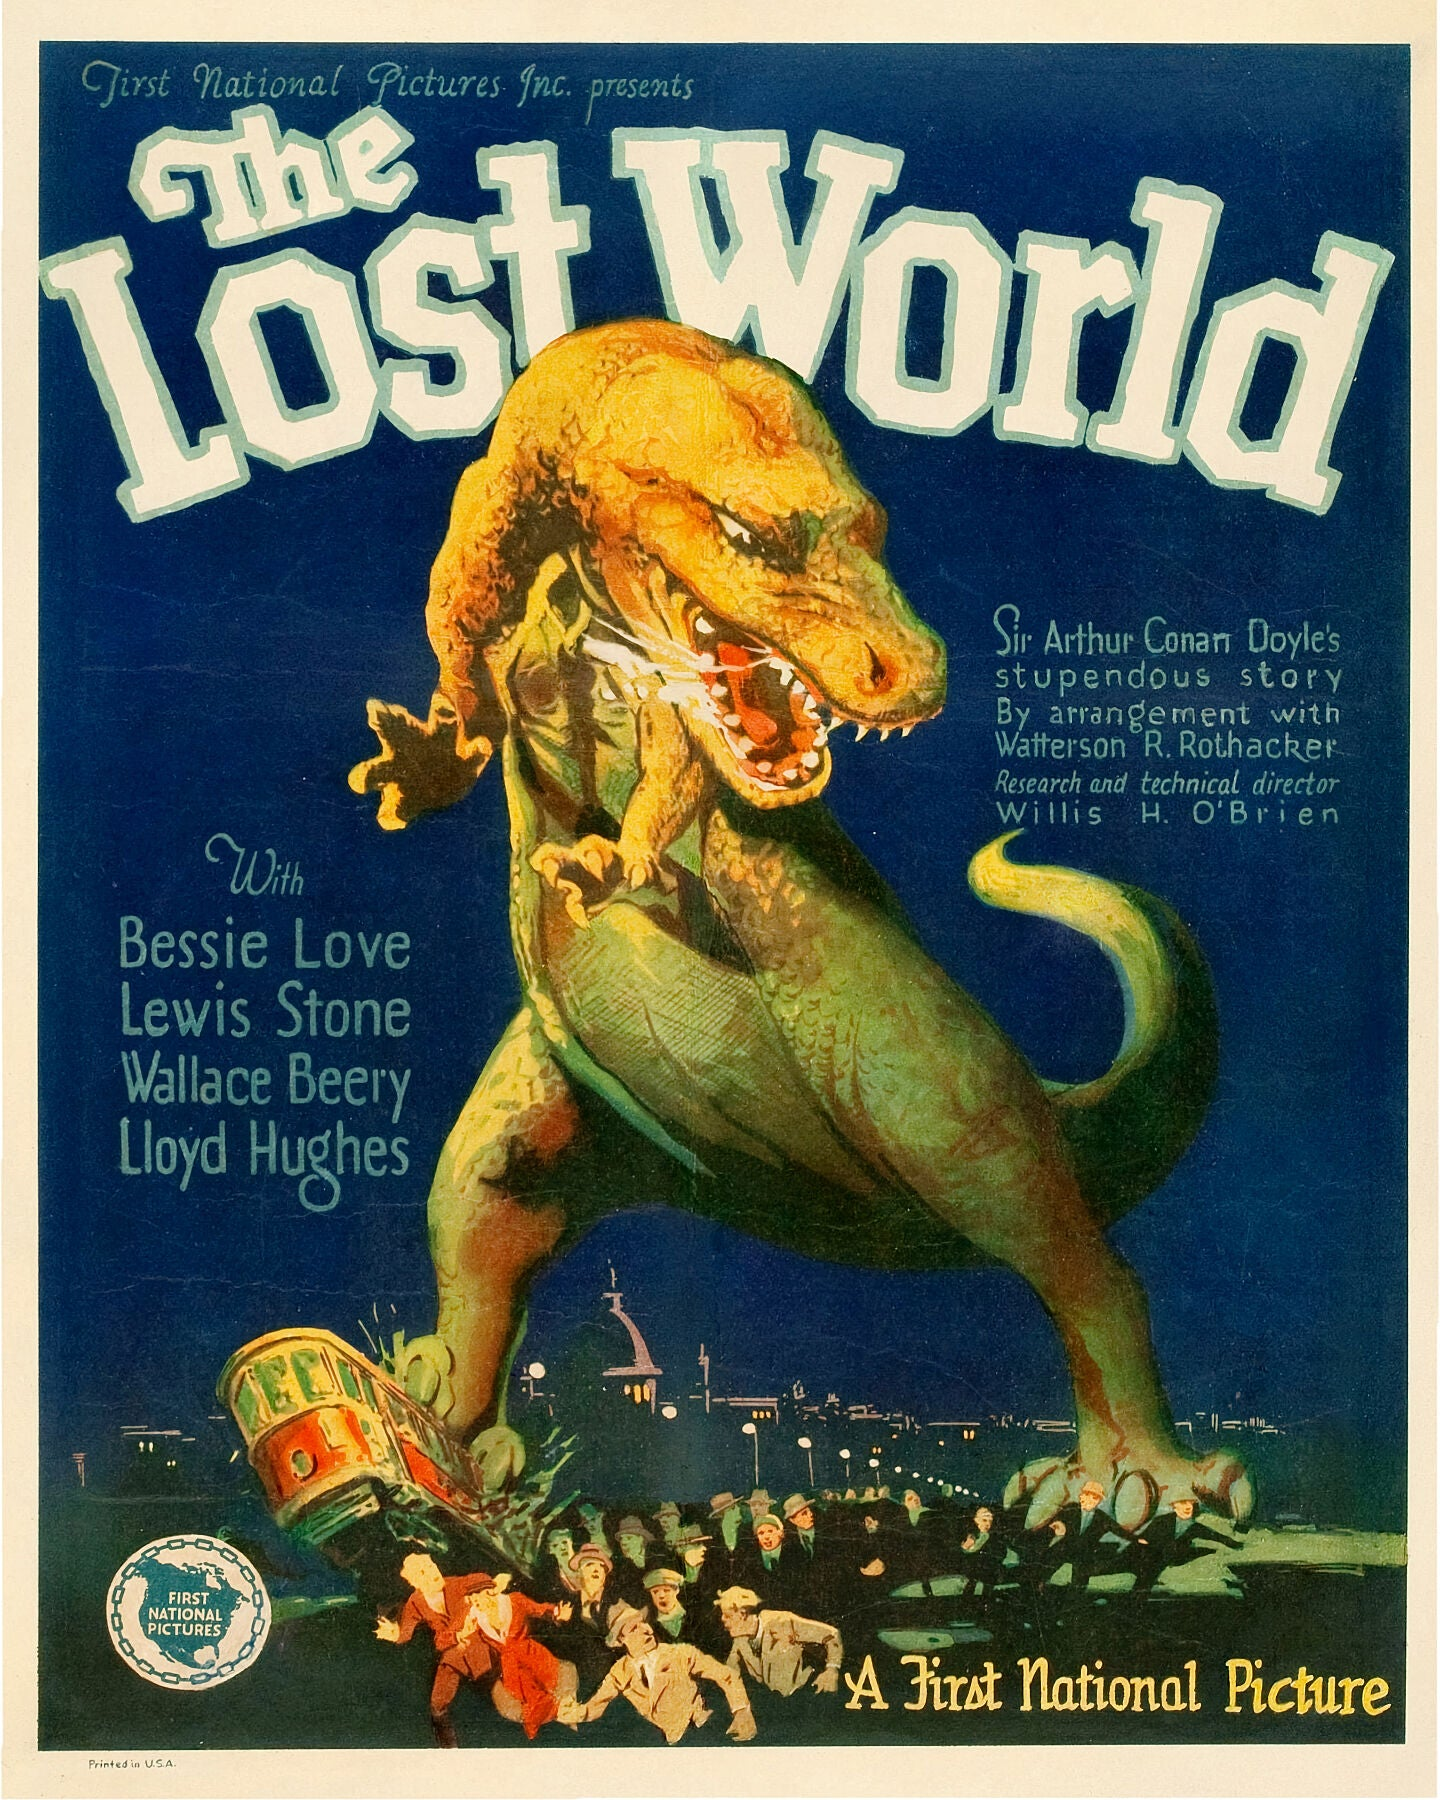 Poster advertising The Lost World movie - 1925.